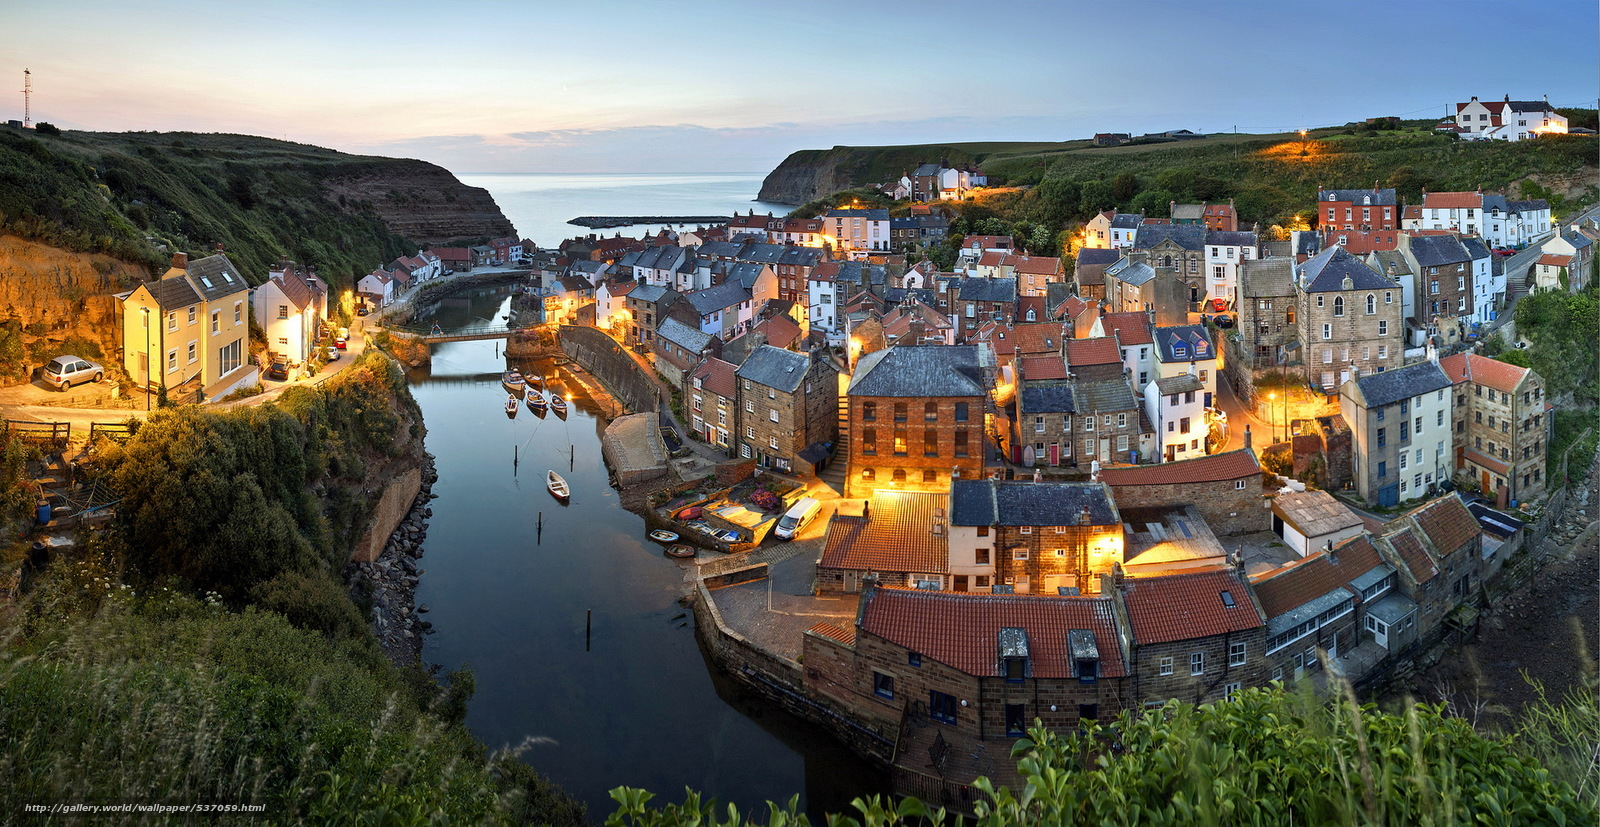 Download Wallpaper Whitby North Yorkshire England Free